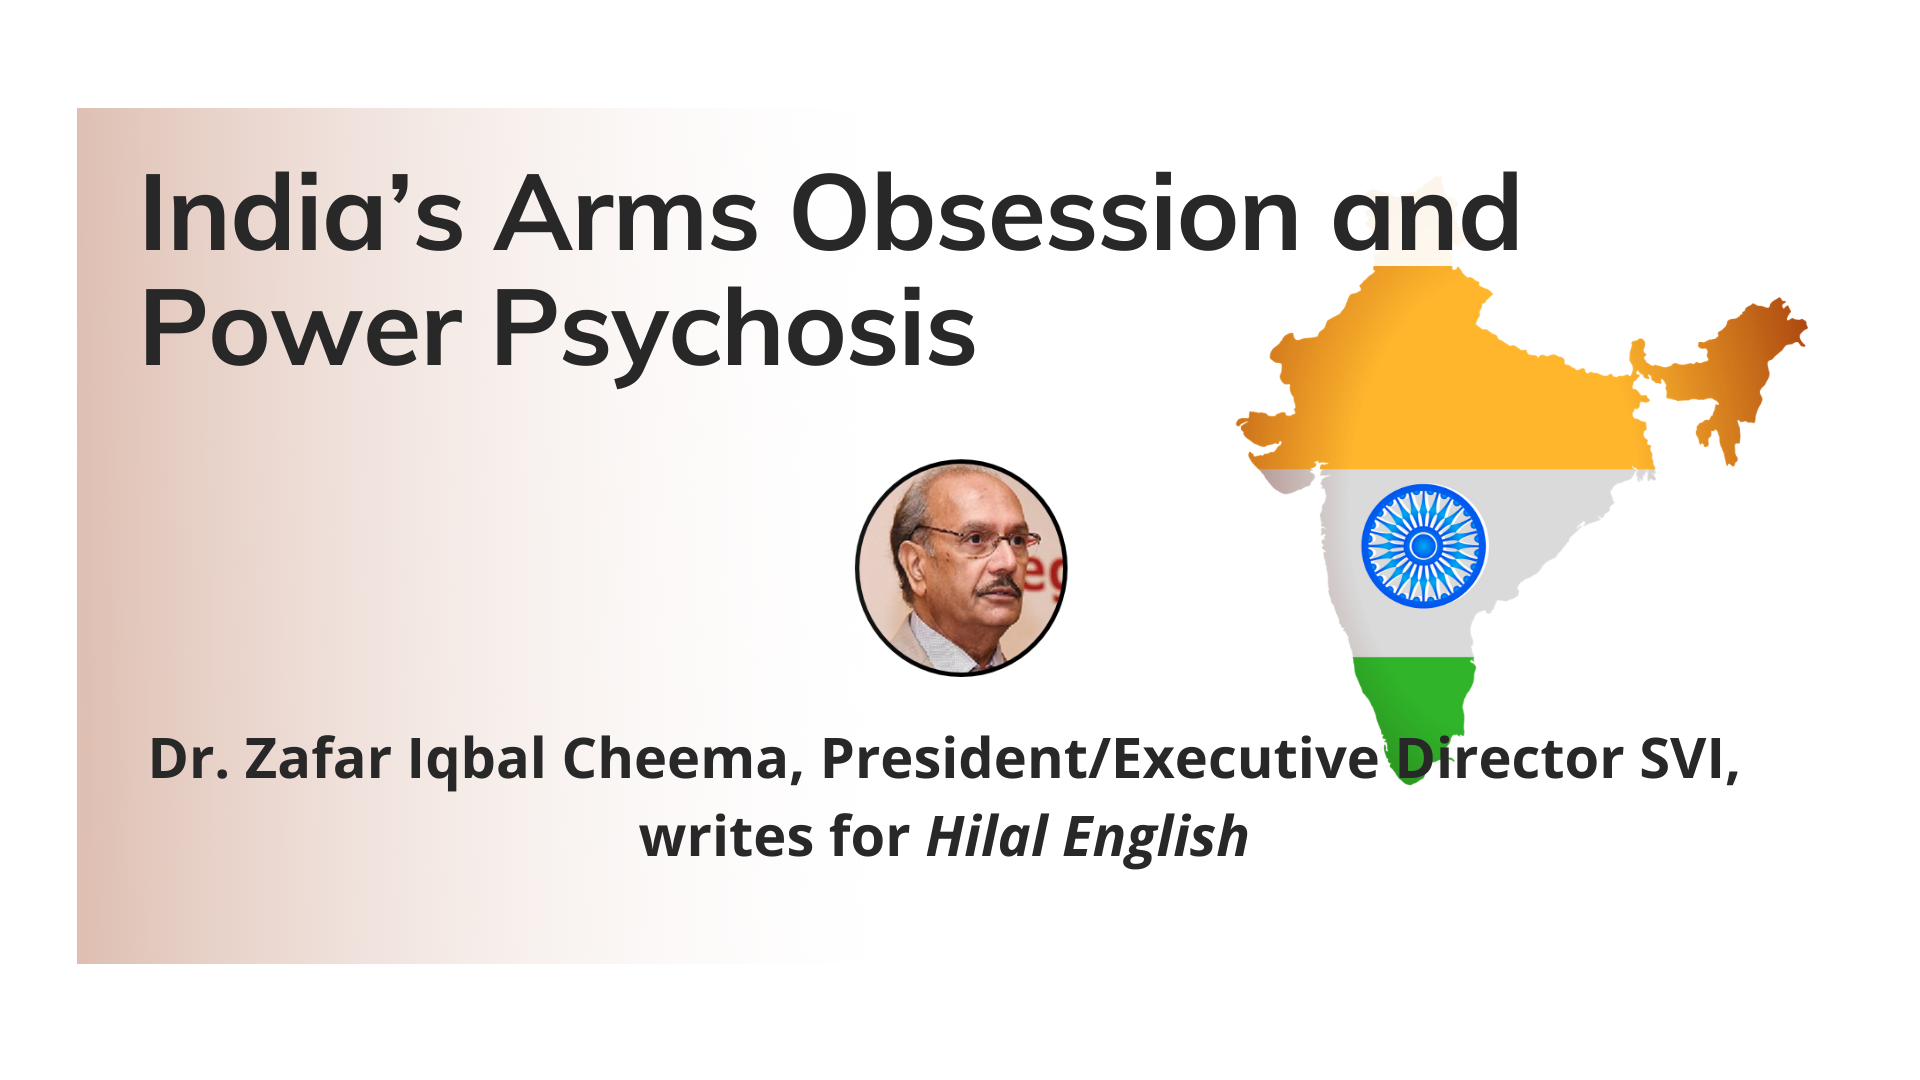 India's Arms Obsession and Power Psychosis